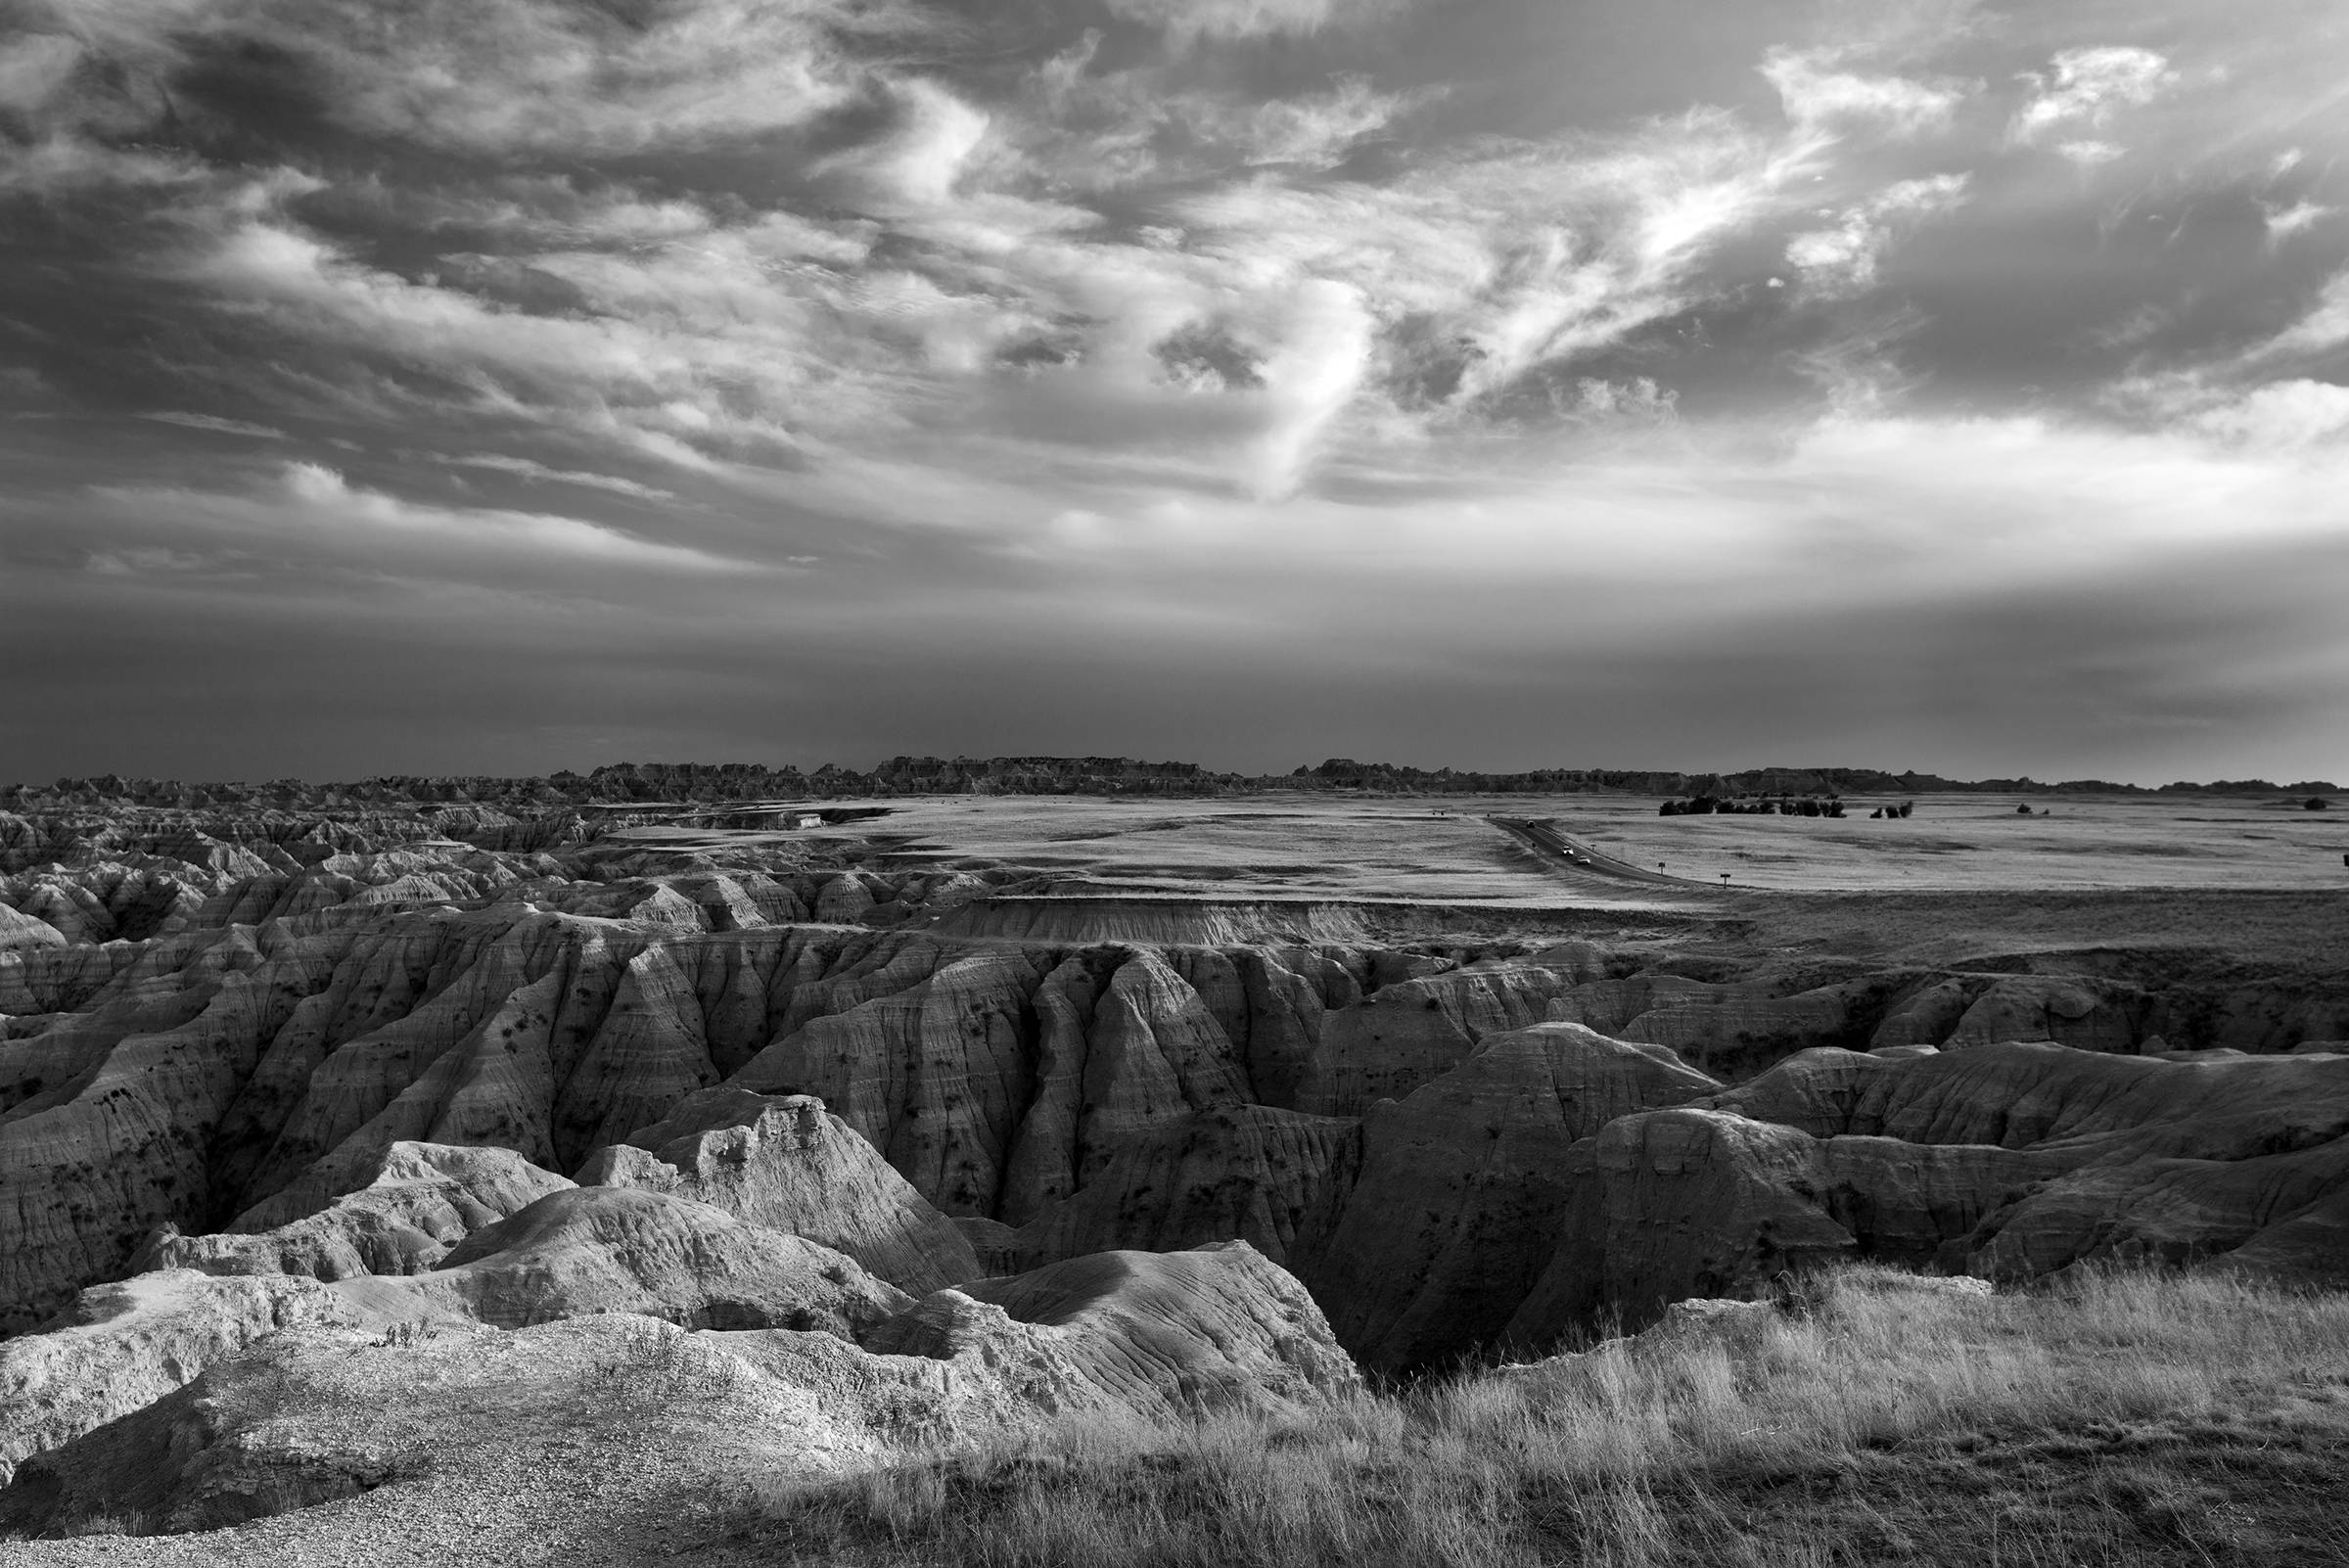 Richard Ryndak's Badlands, 2013, a black-and-white digital photograph, was the winner of the 2013 CLC Student Art Competition Purchase Award.